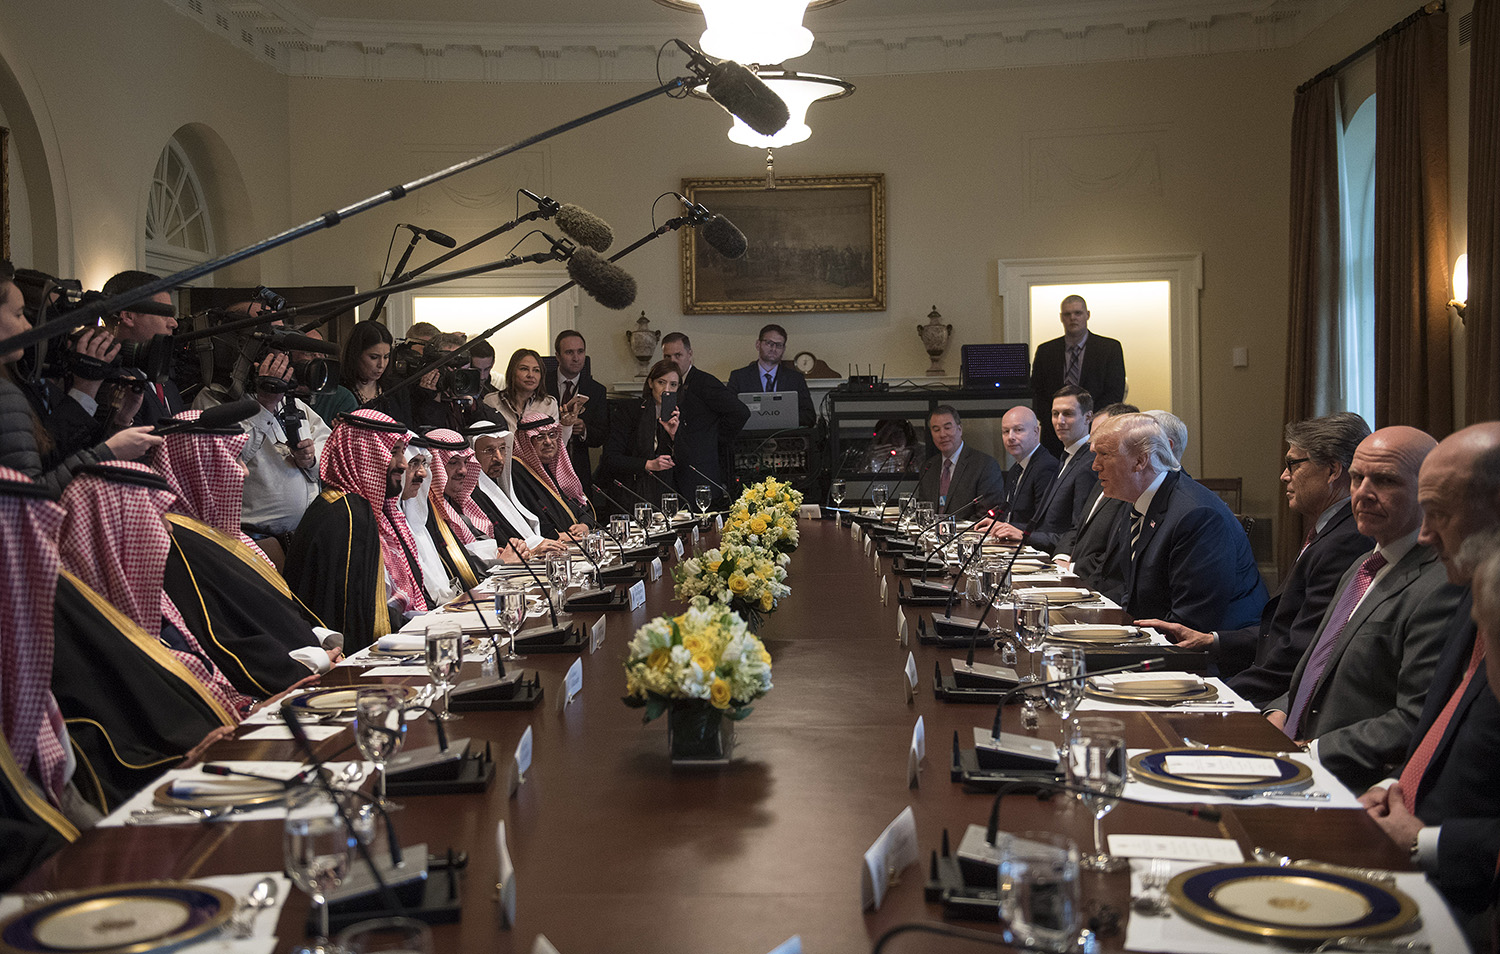 U.S. President Donald Trump holds a working lunch with Saudi Crown Prince Mohammed bin Salman at the White House in Washington on March 20, 2018.